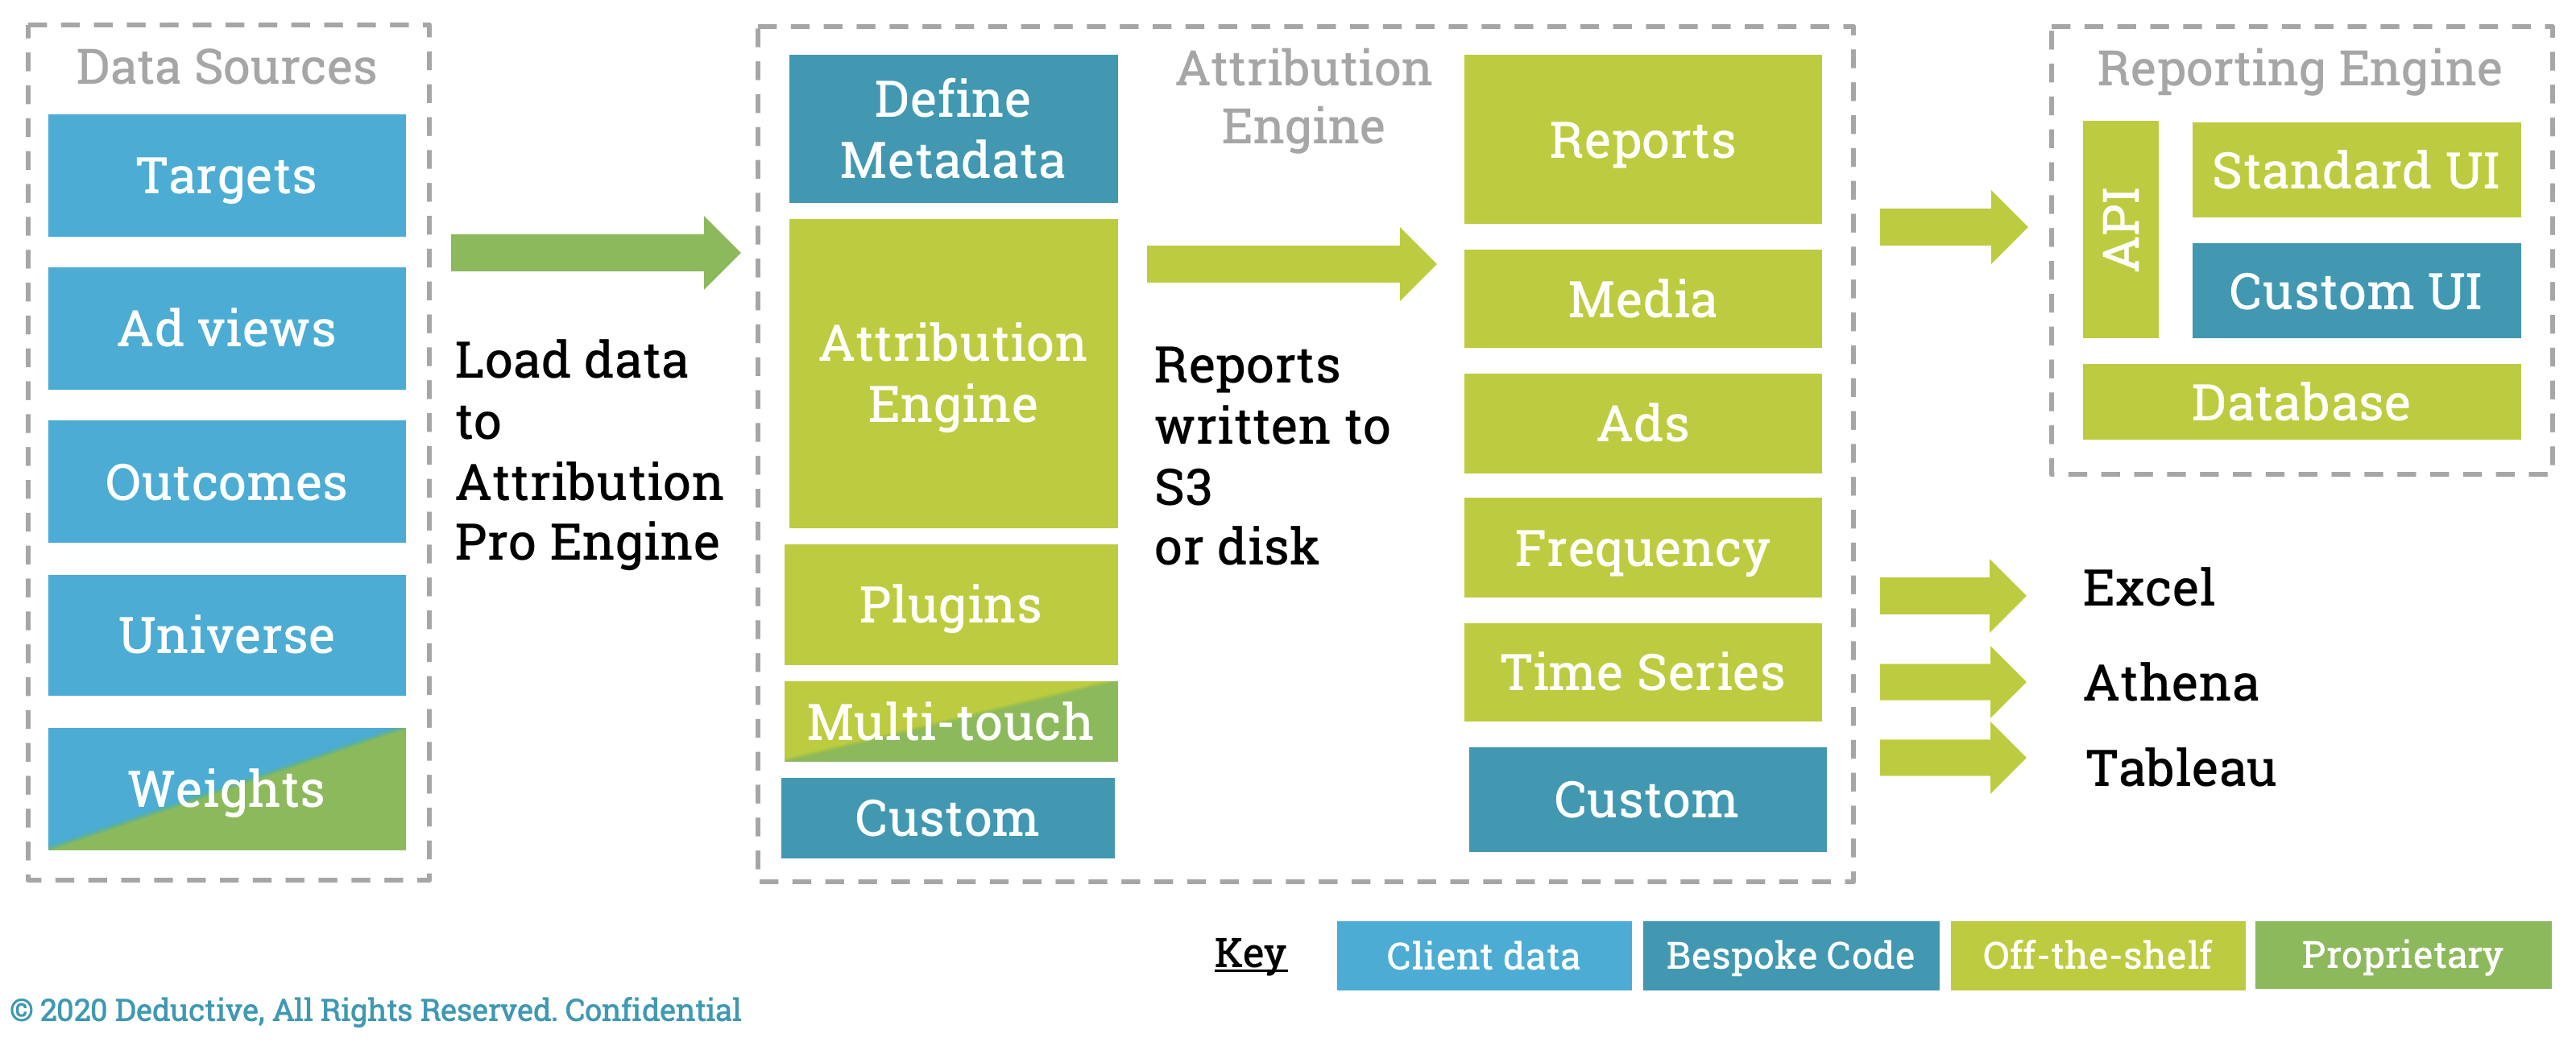 Data Sources Diagram